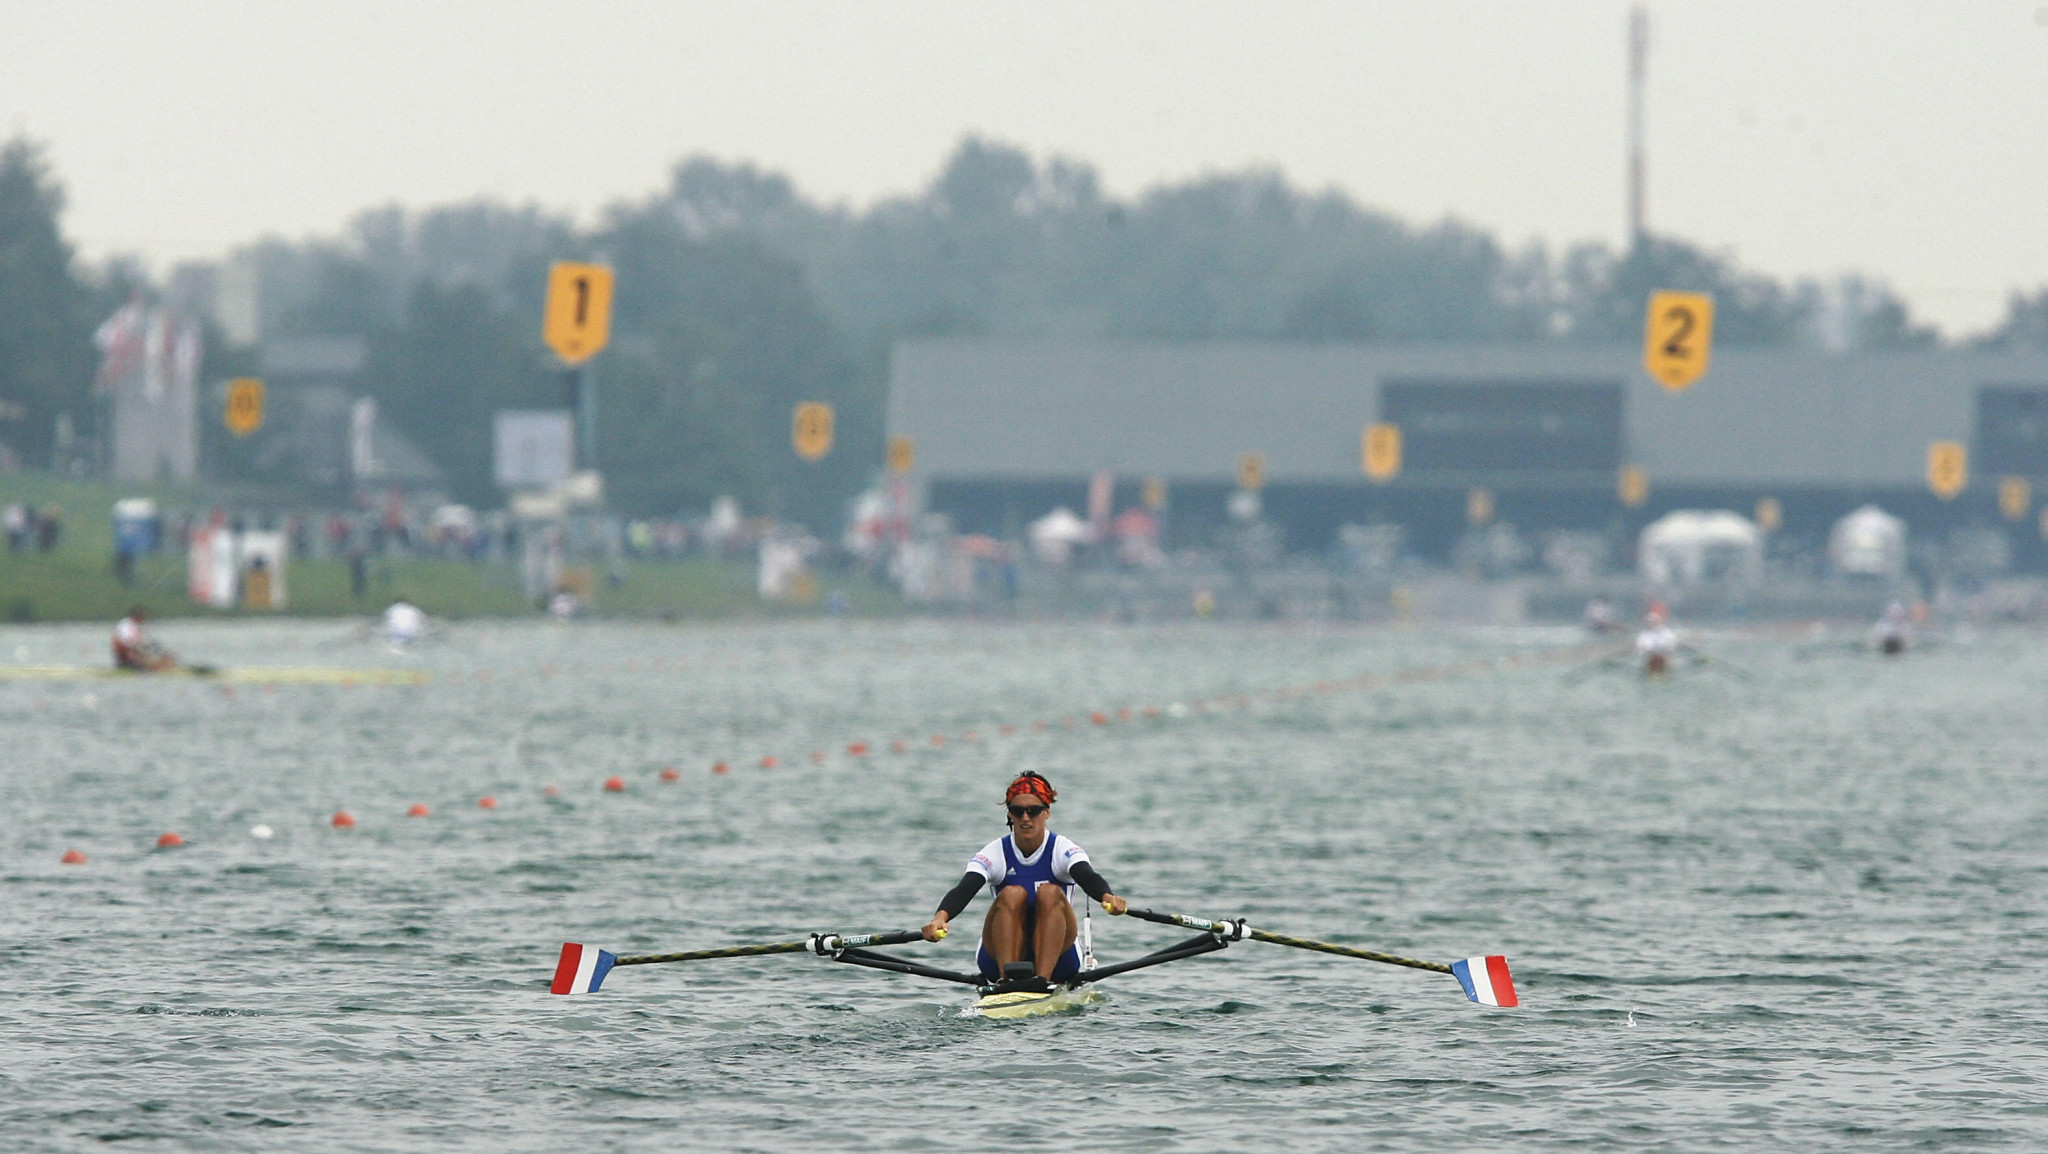 The historic Oberschleißheim regatta course staged the 2007 World Rowing Championships ©Getty Images